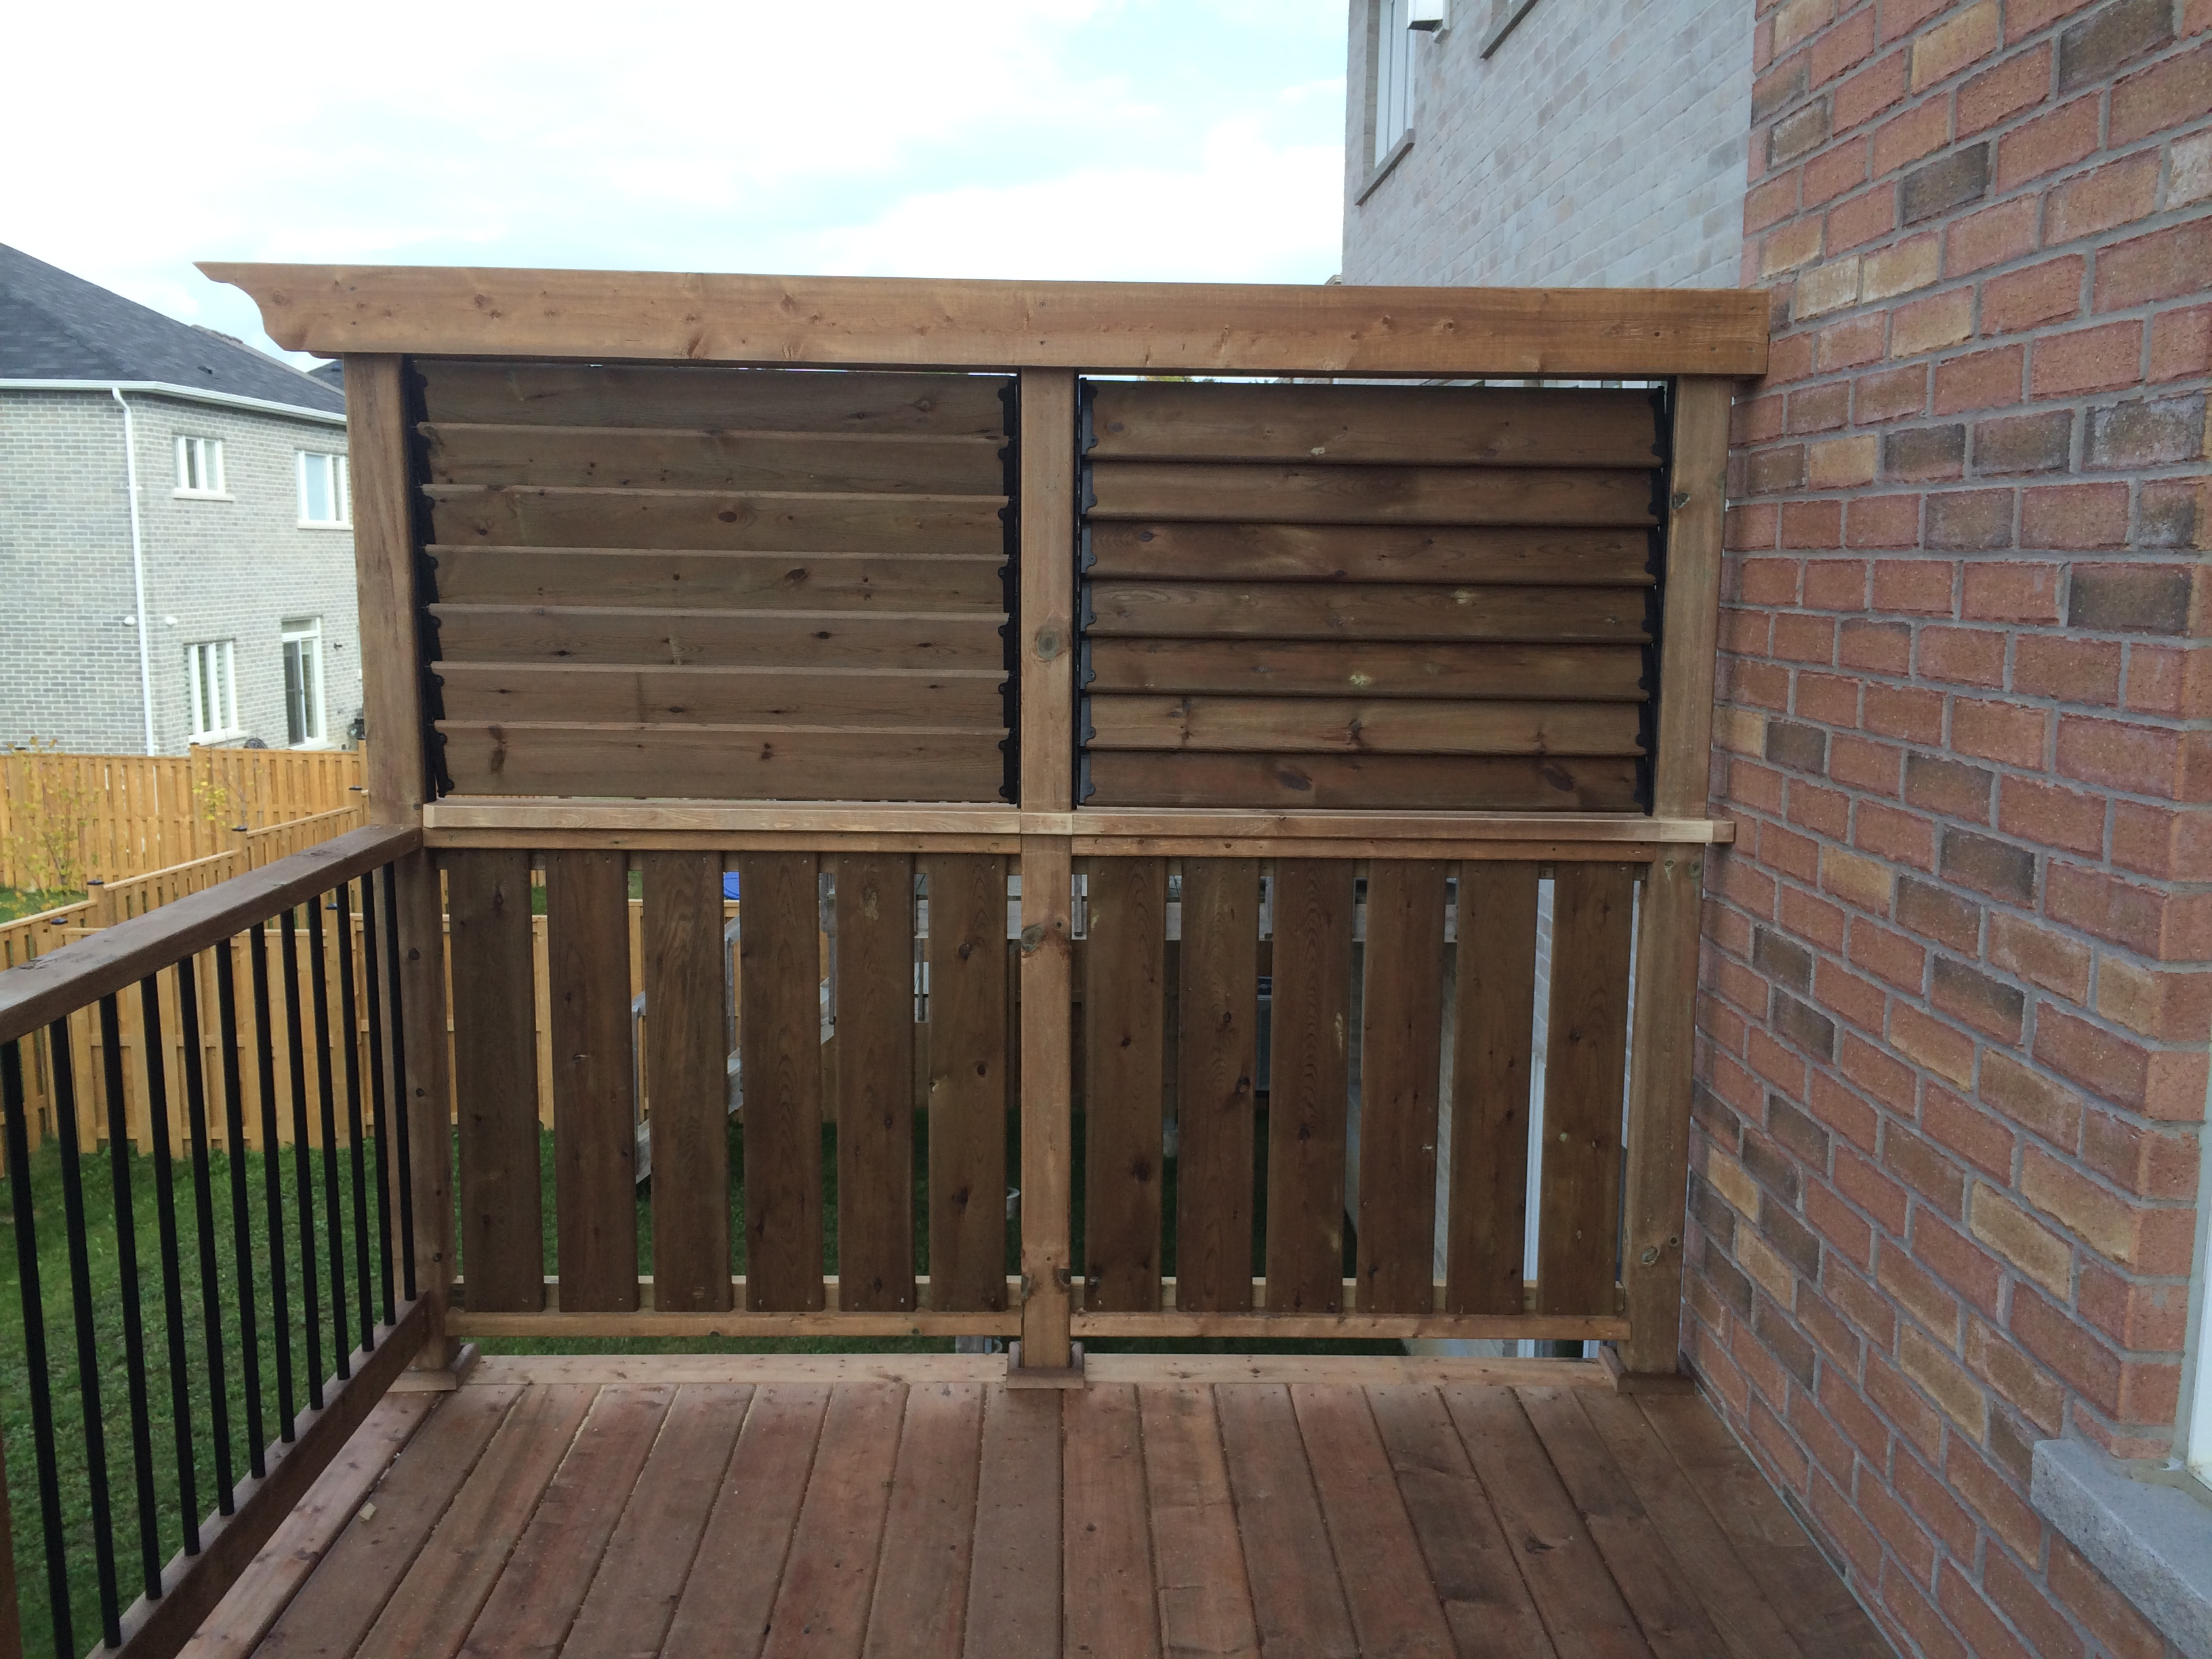 Design Deck Privacy Walls deck wall newmarket after construction privacy closed closed